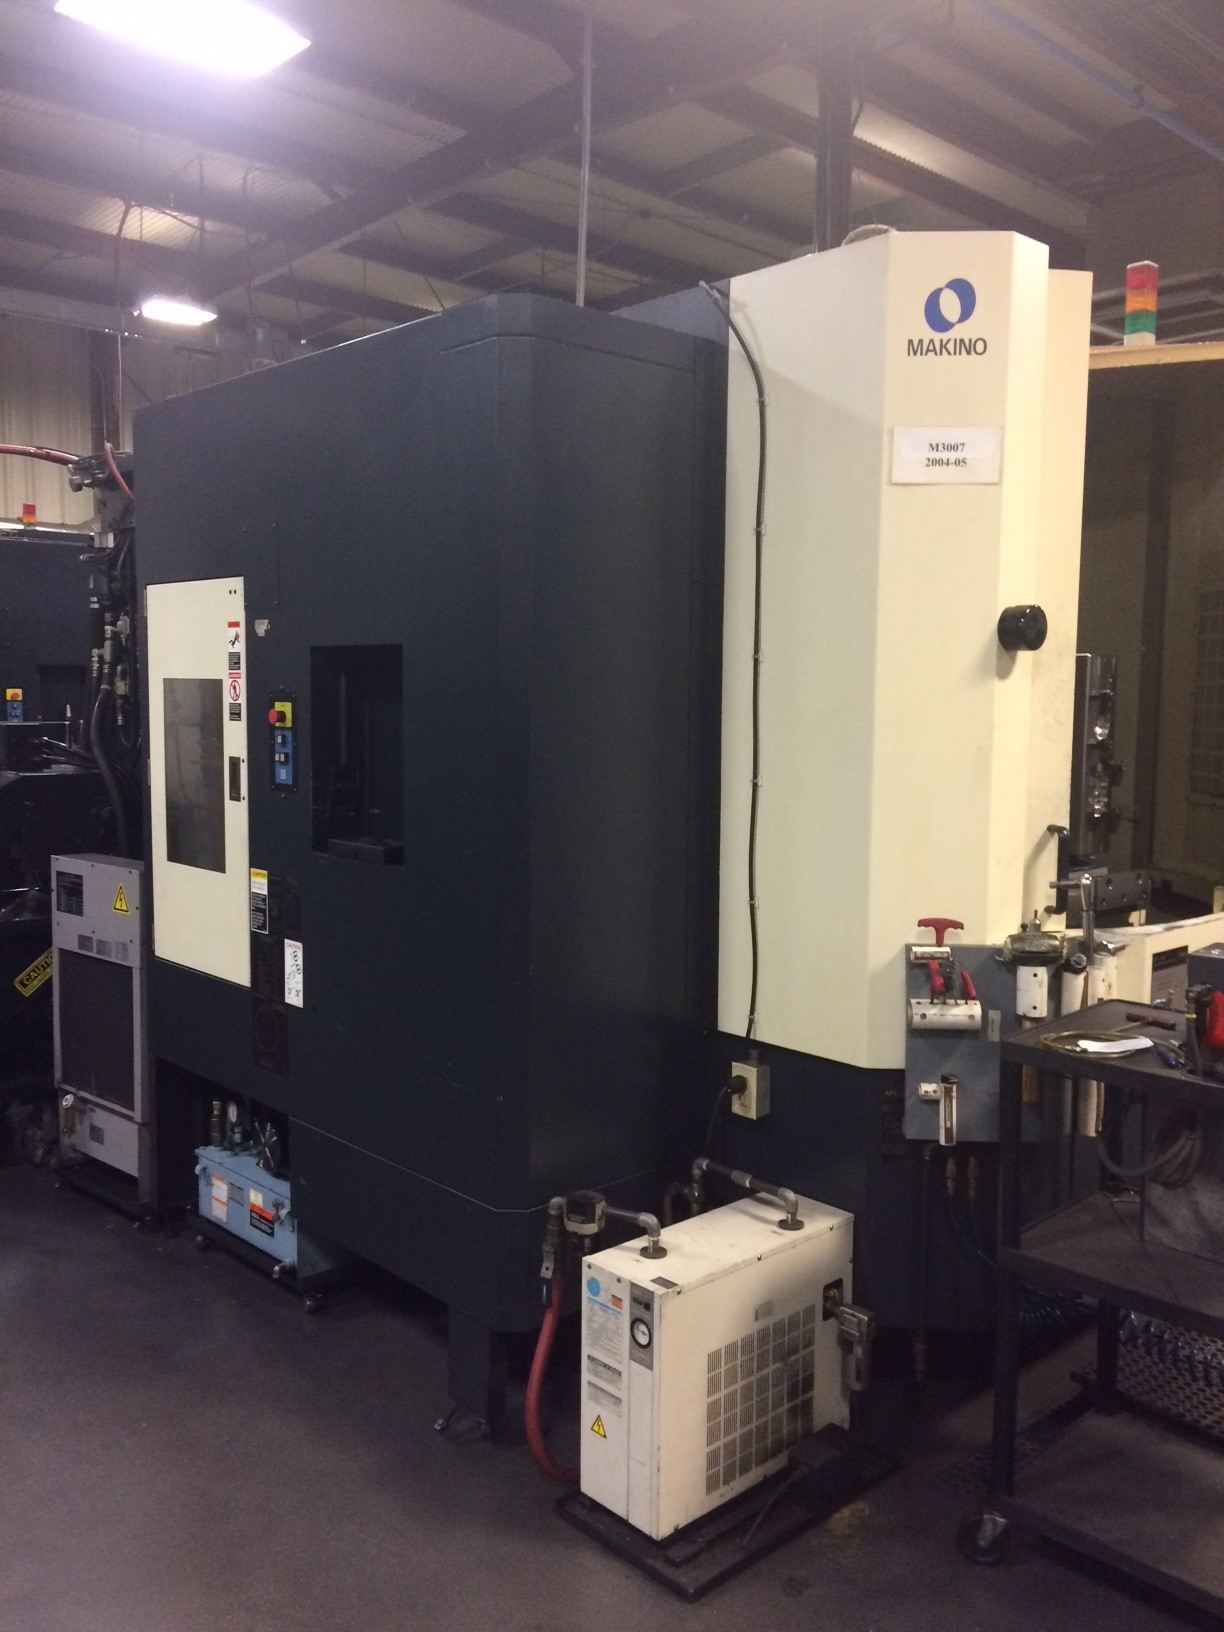 "Makino A61 5th Axis HMC, 2005, 12K RPM, 20"" Pallets, CT40, Pro-3 Ctrl, Tsudakoma Table, Laser Tool Sensor, Renishaw Probe, 60 ATC, Chip Conveyor, Coolant"